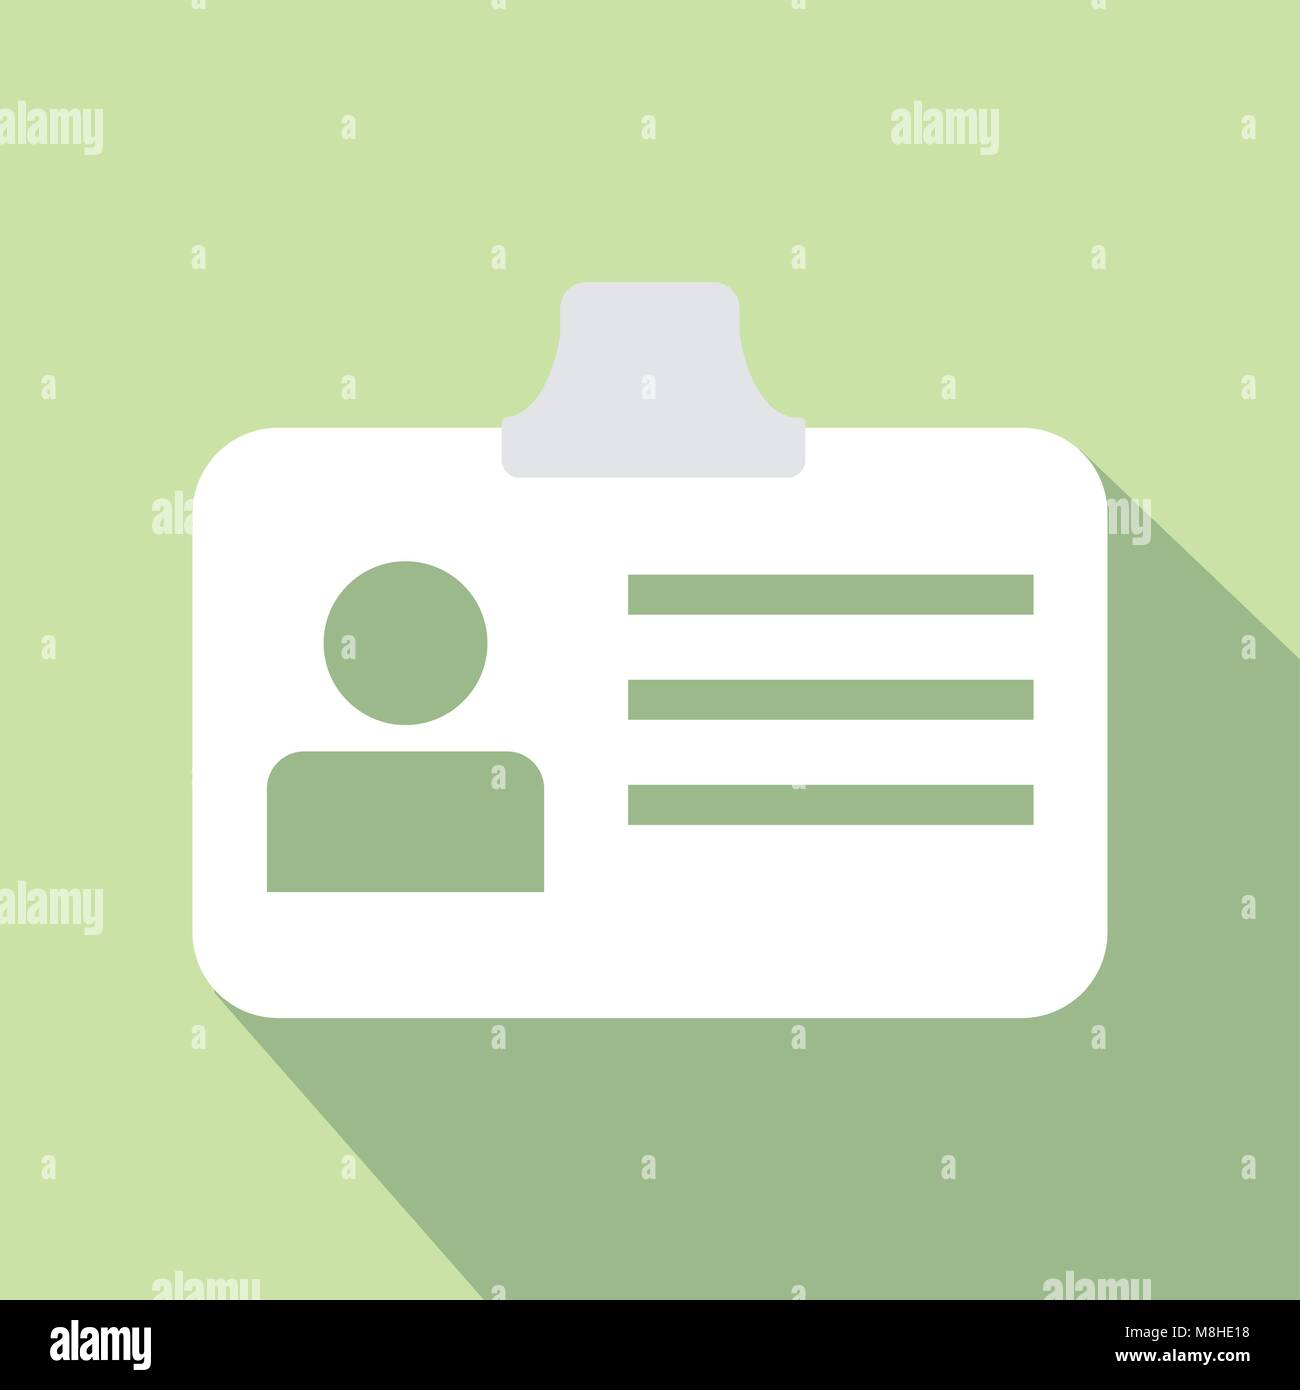 design vector of icon id card flat color - Stock Vector